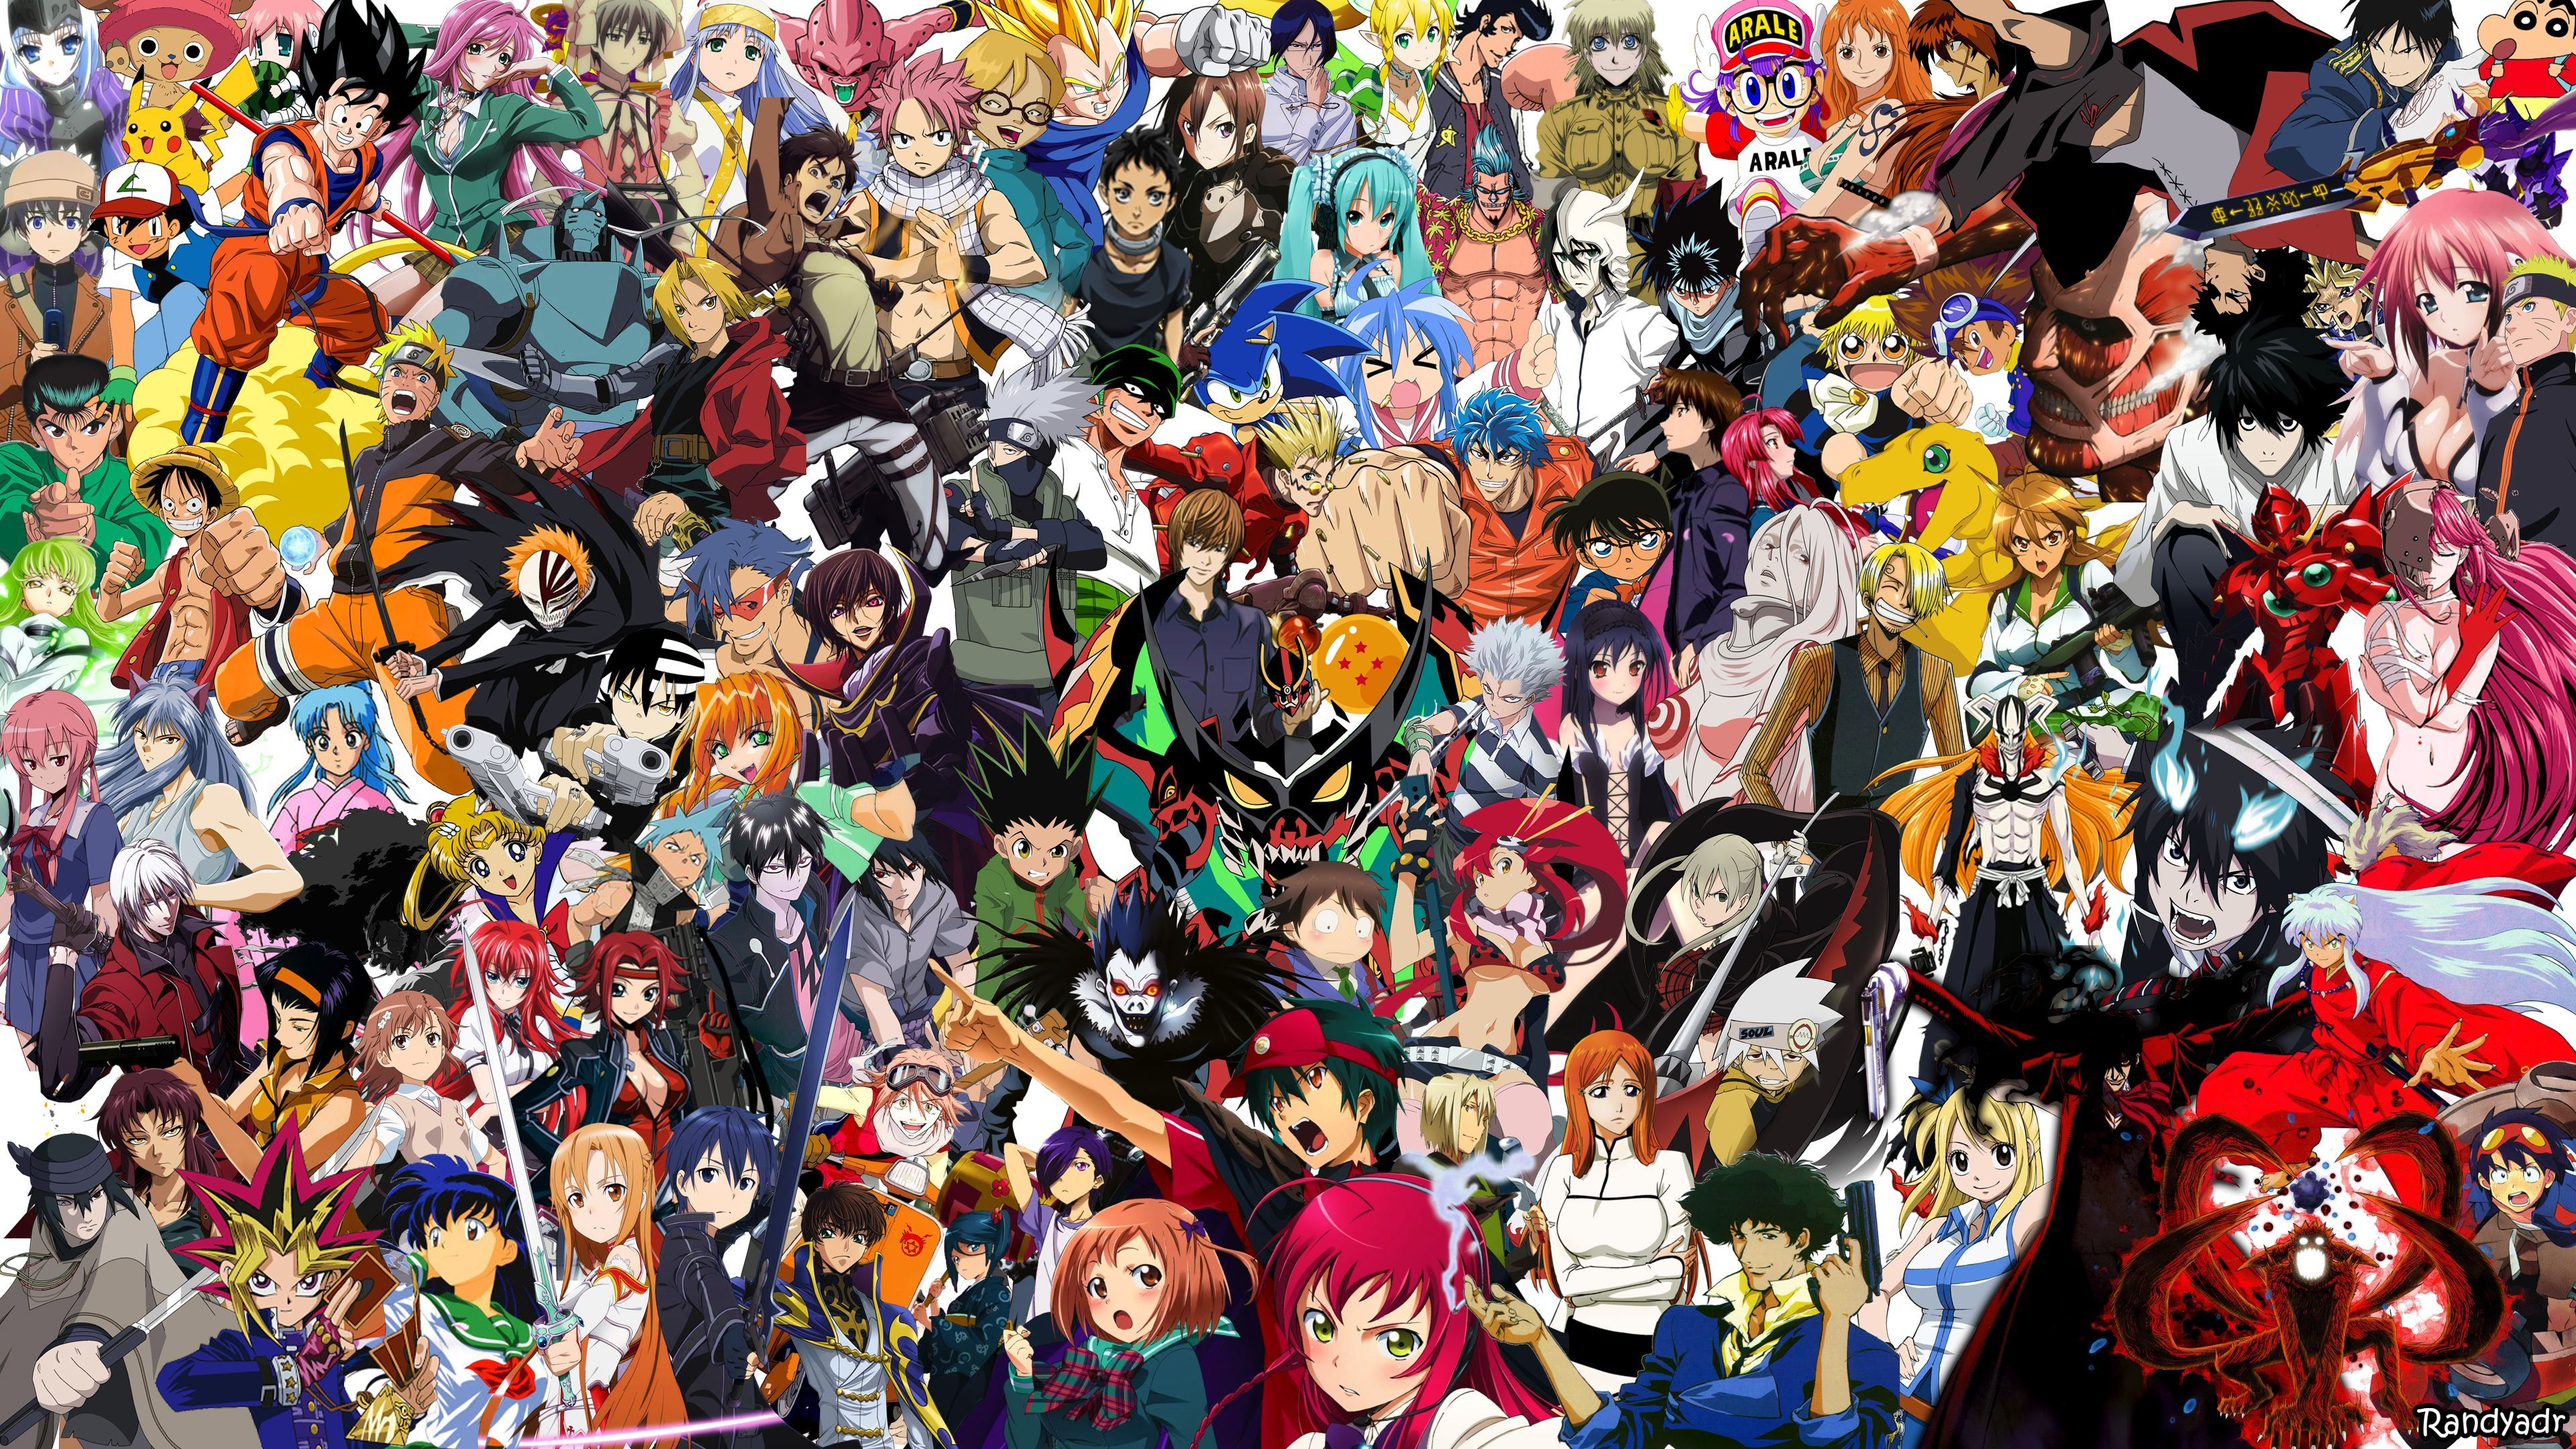 Anime Collage Wallpapers Top Free Anime Collage Backgrounds Wallpaperaccess Anime Wallpaper Anime Wallpaper Iphone Hd Anime Wallpapers